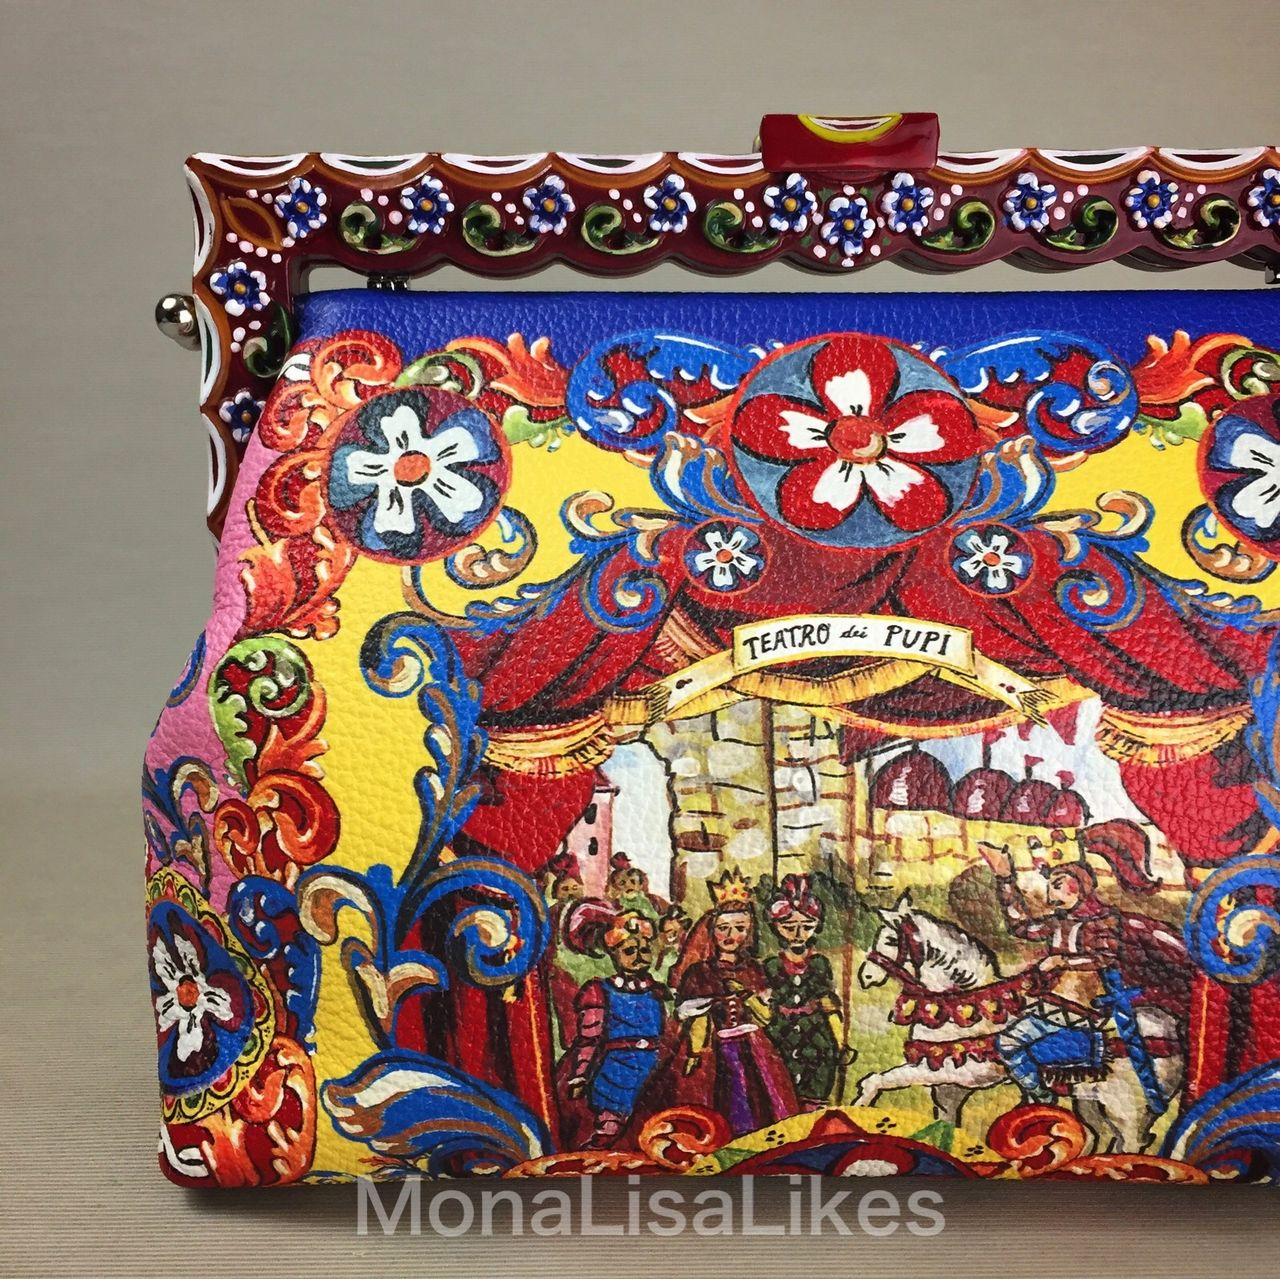 Carretto Siciliano print on DOLCE & GABBANA Vanda bag with hand painted wooden frame